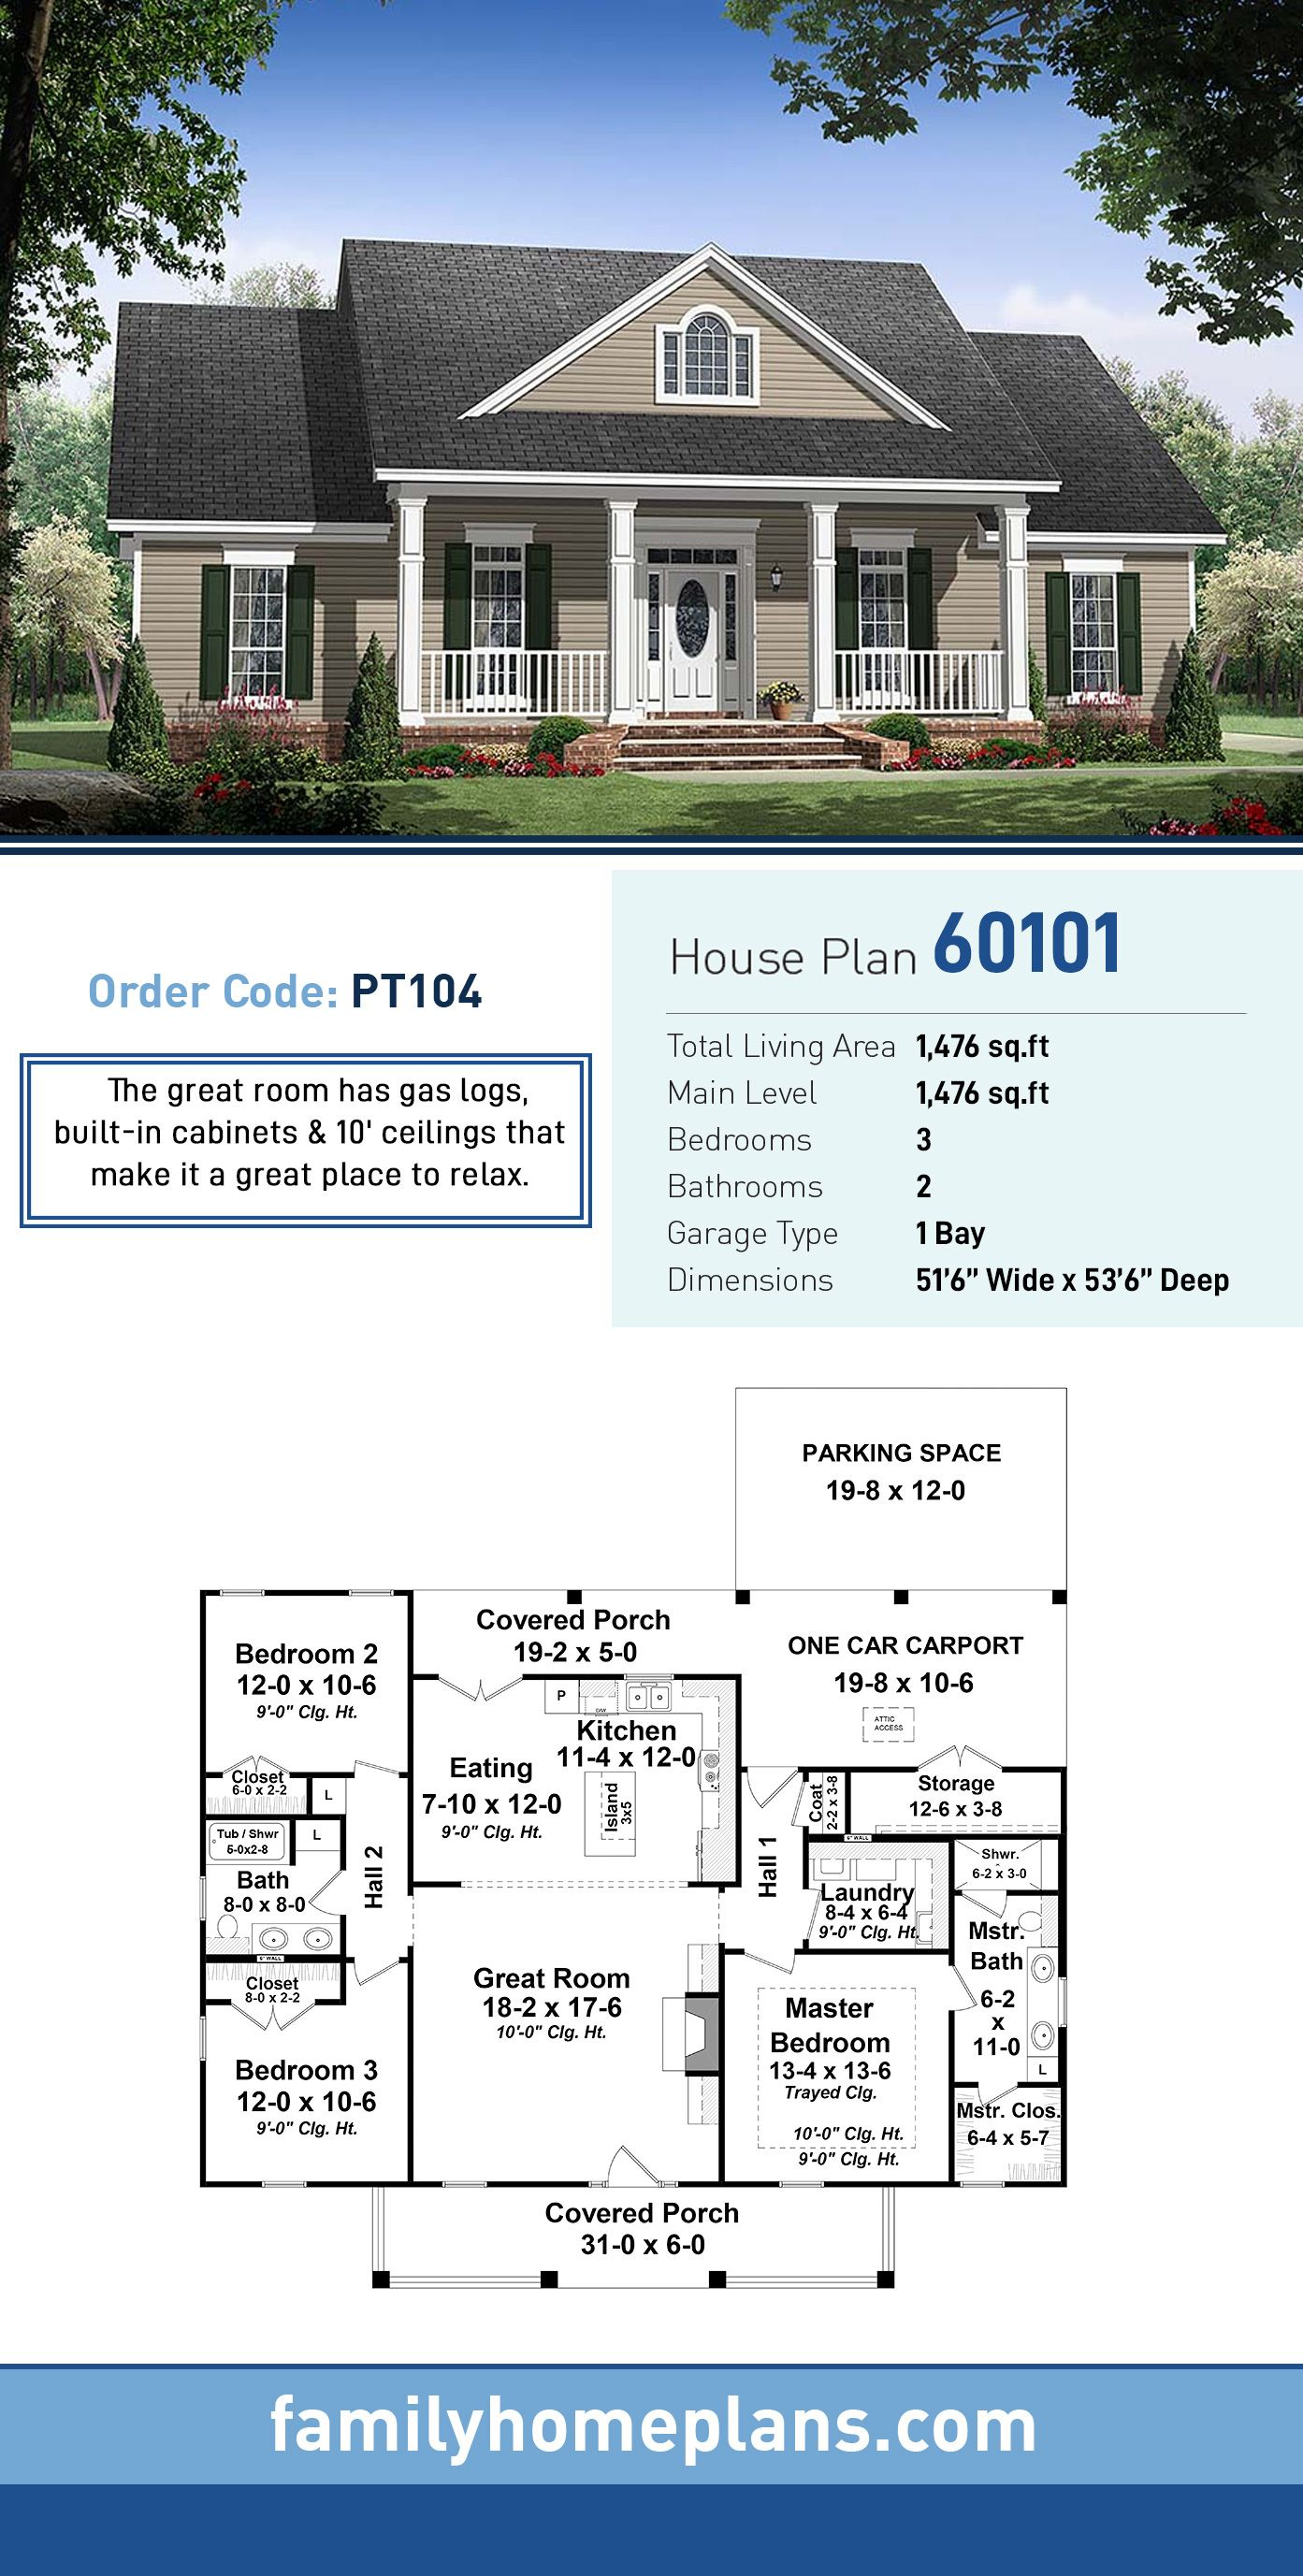 Traditional Style House Plan 60101 With 3 Bed 2 Bath 1 Car Garage Country House Plans Ranch House Plans Craftsman House Plans